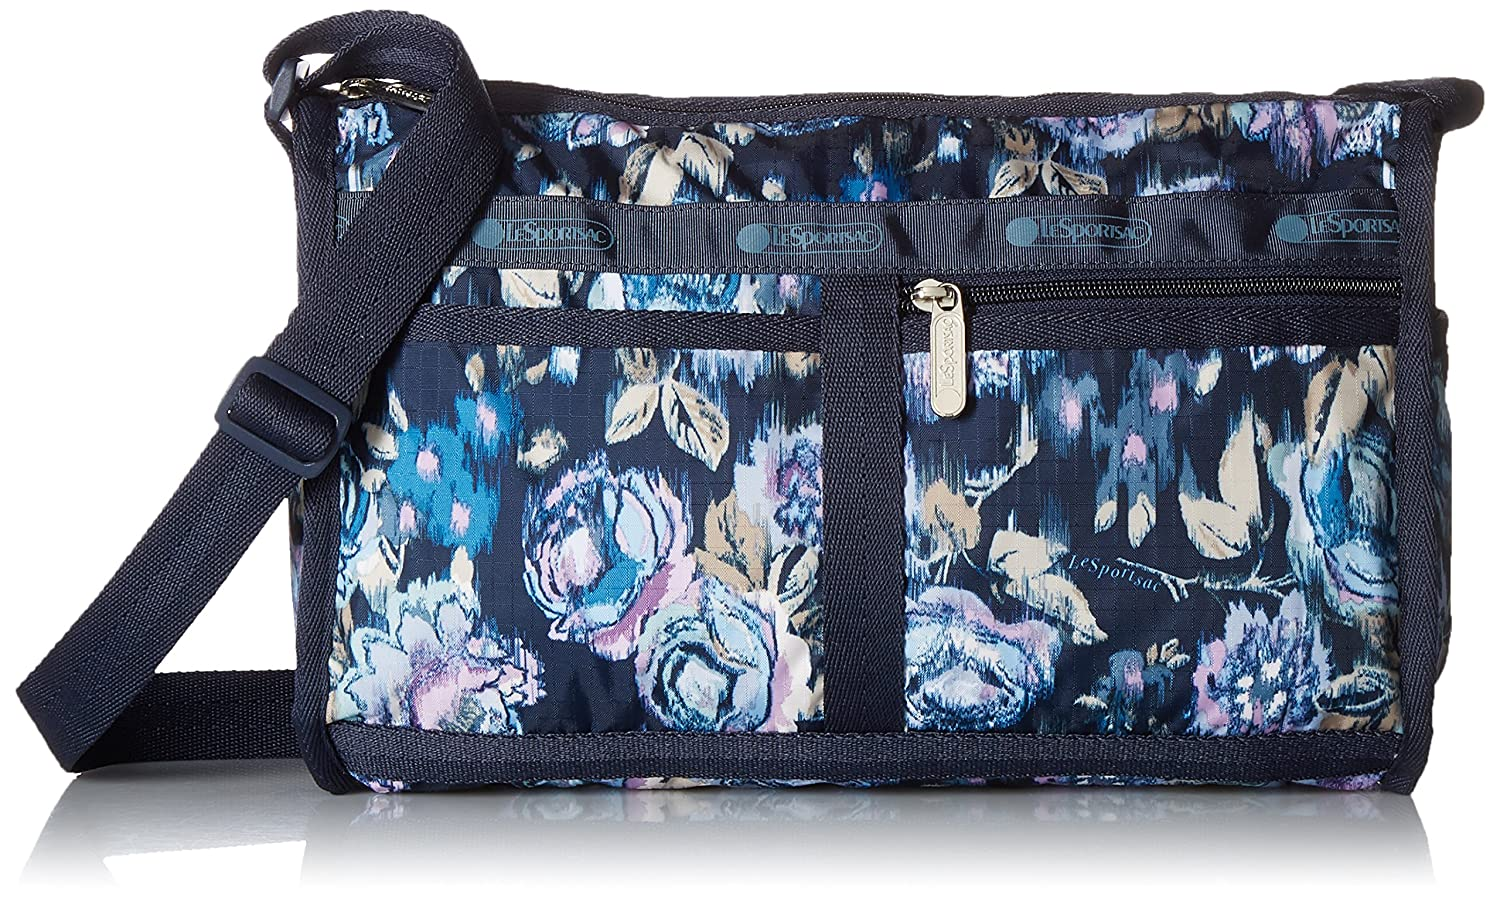 [レスポートサック] ショルダーバッグ DELUXE SHOULDER SATCHEL 軽量 7519 [並行輸入品] B076M4NDGV Night Blooms Blue Night Blooms Blue